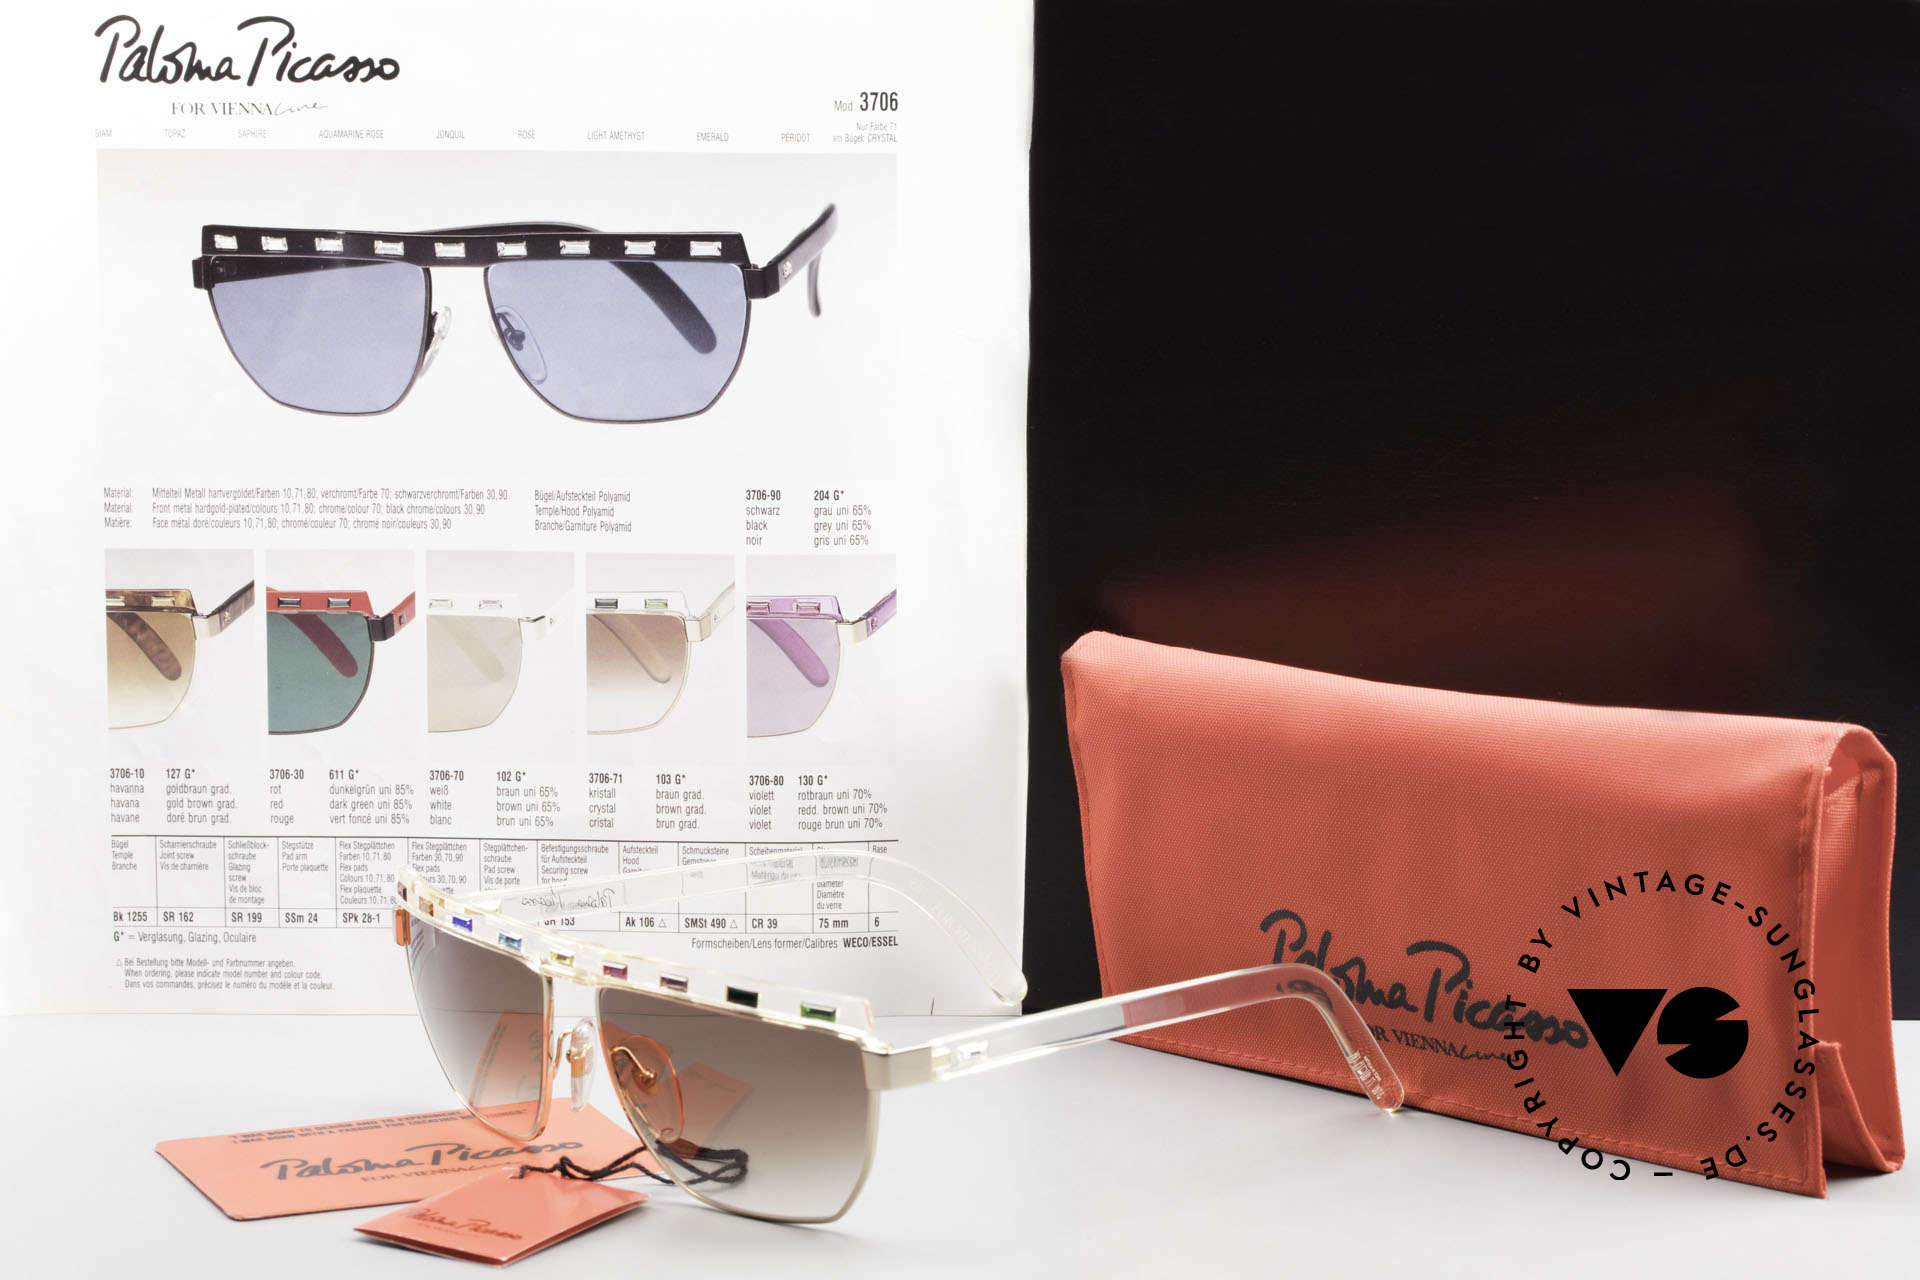 Paloma Picasso 3706 With Colors Of All Gemstones, unworn (like all our rare vintage designer sunnies), Made for Women